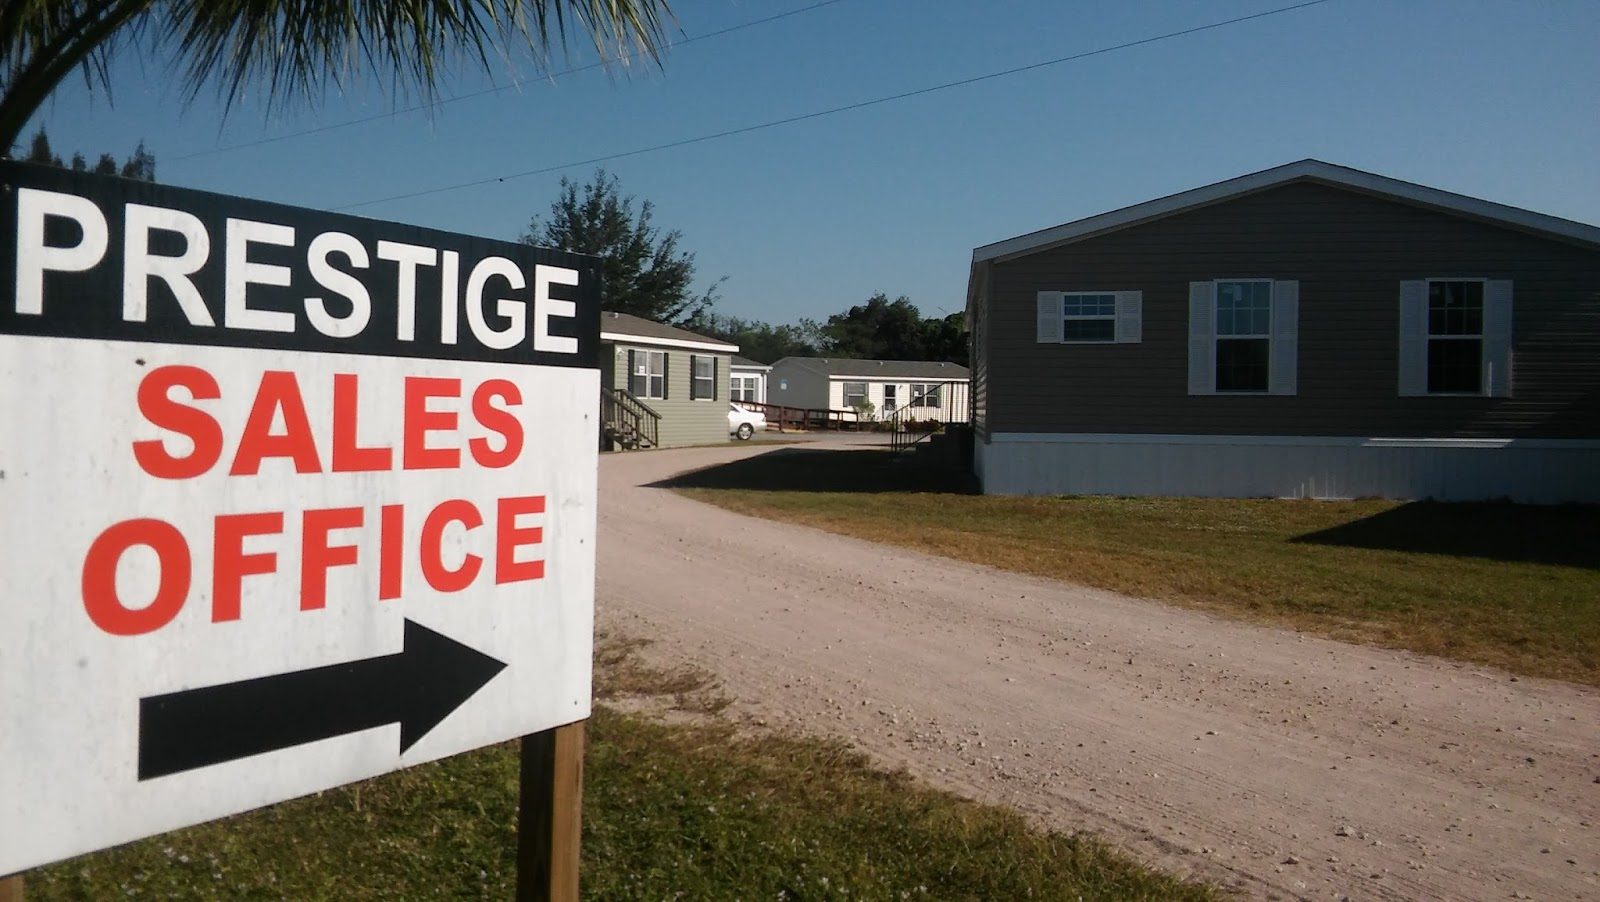 Mobile Homes For Sale In South Florida on mobile home parks sale florida, mobile home trailer houses, mobile homes in florida, mobile homes rent south florida,